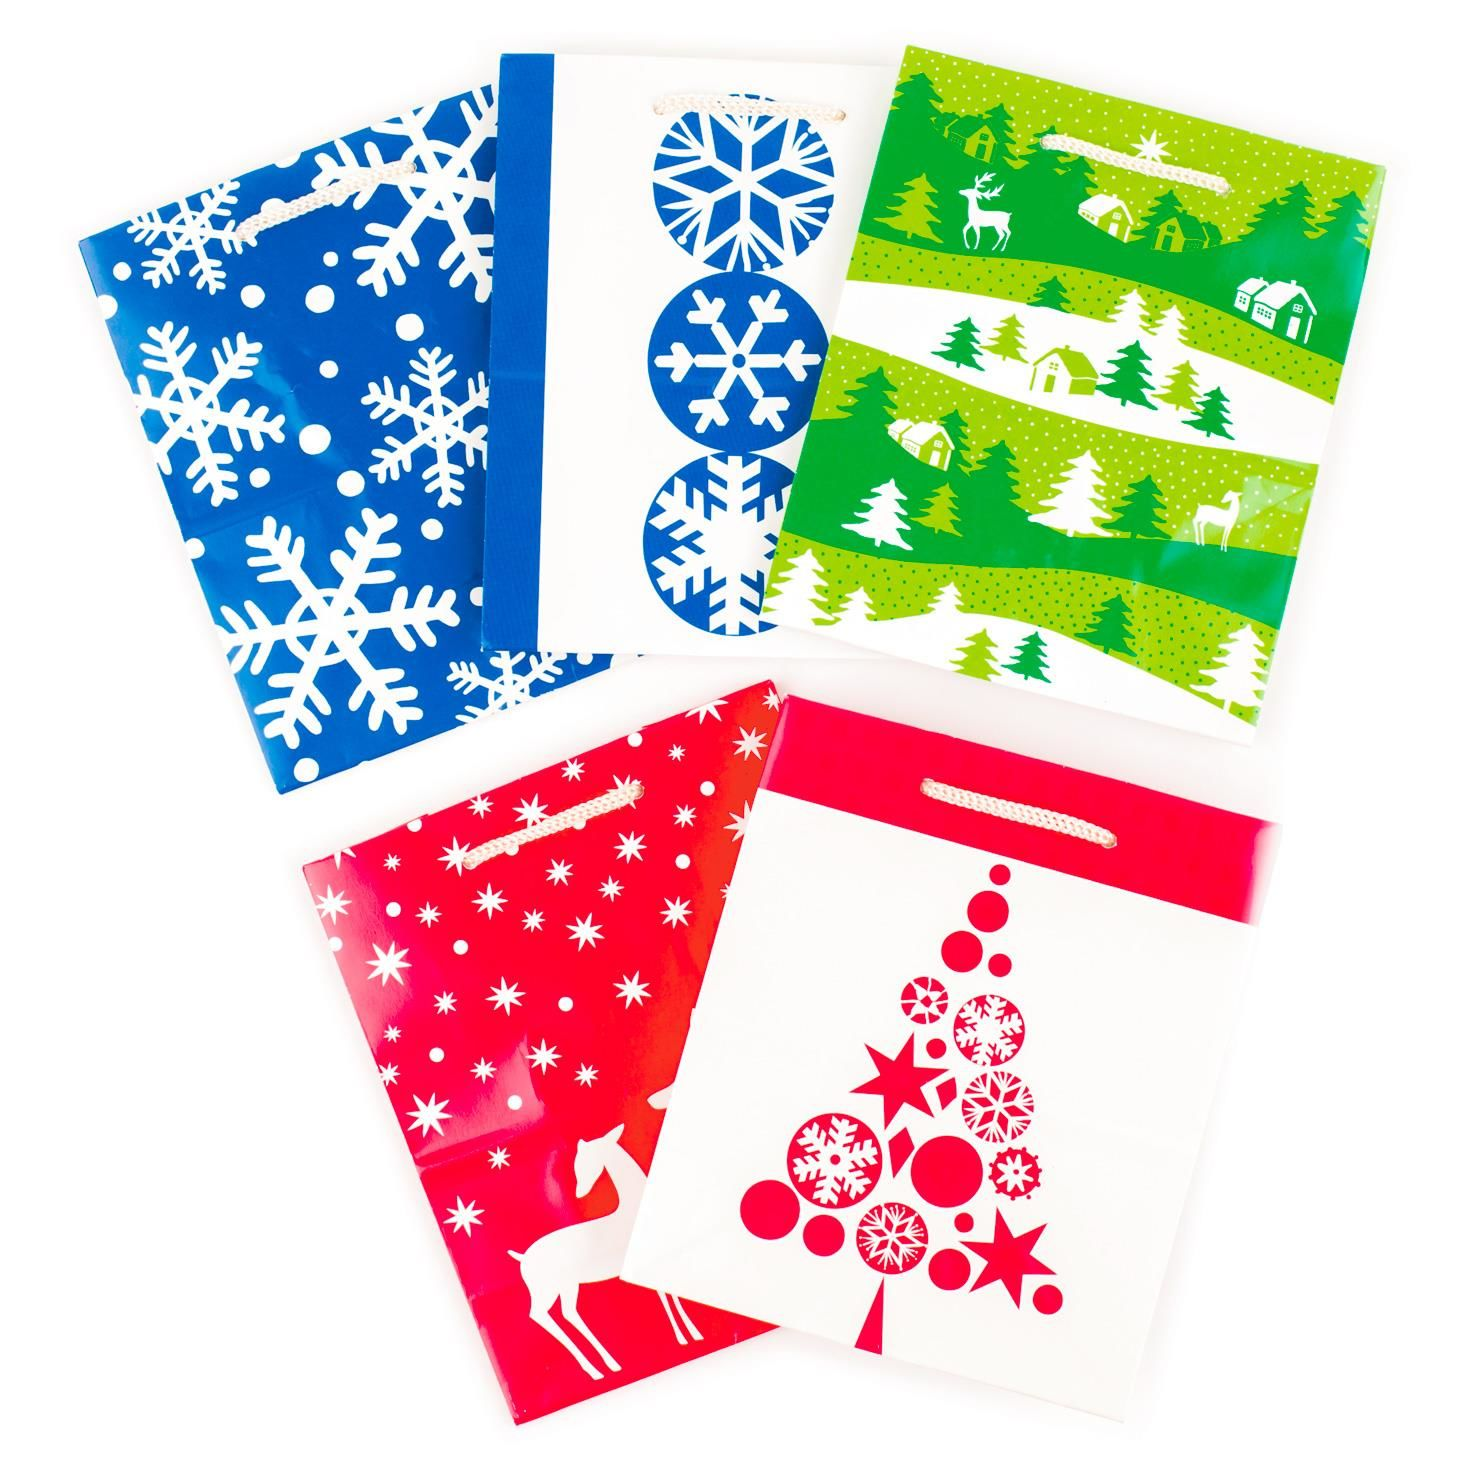 Christmas Icons Pack Xl, Large, Medium And Small Gift Bags